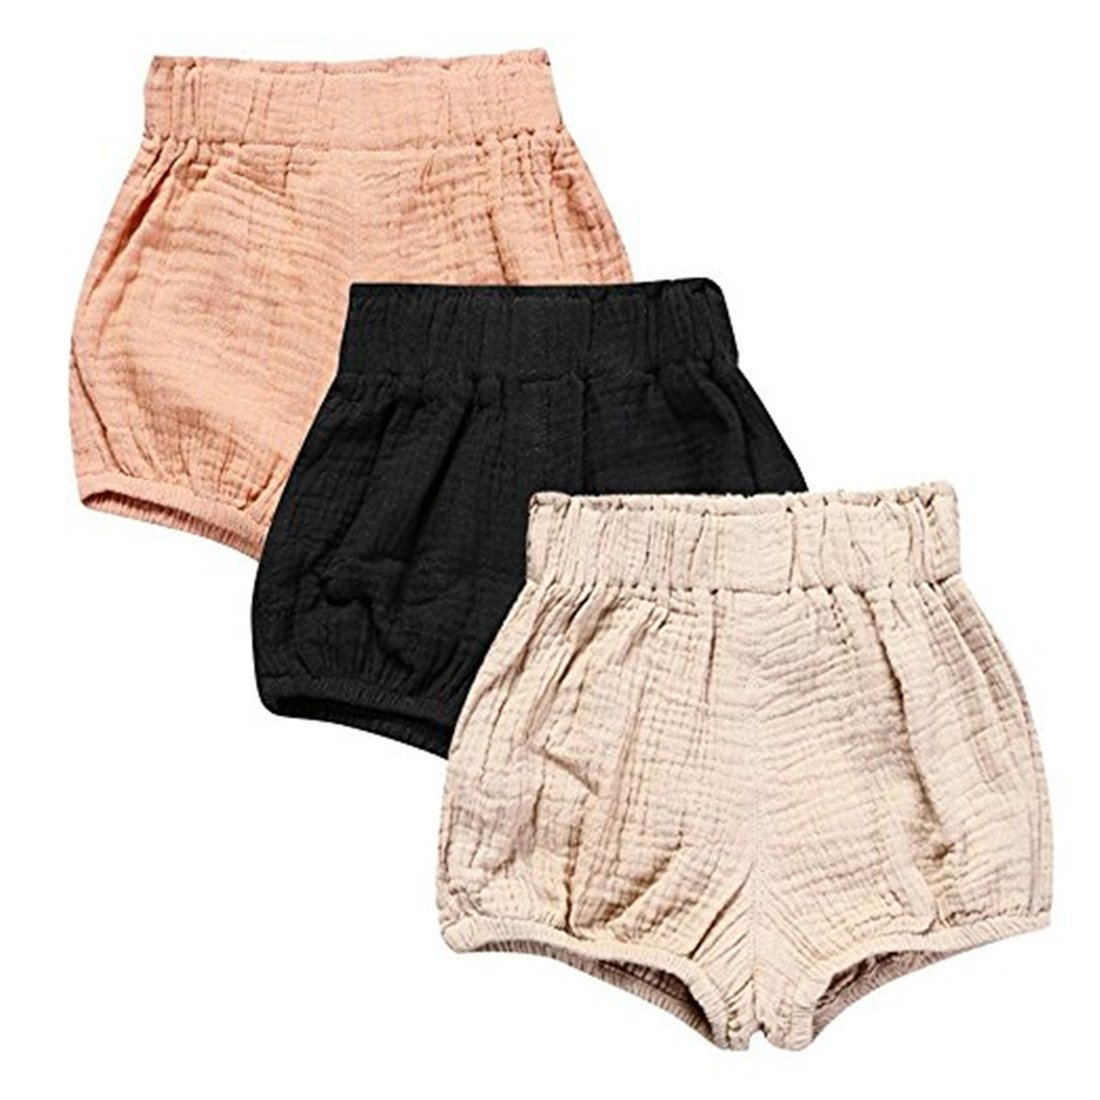 3 Pack of Kleinkind Baby M/ädchen Jungen Cotton Linen Sommer Blend Cute Bloomer Shorts